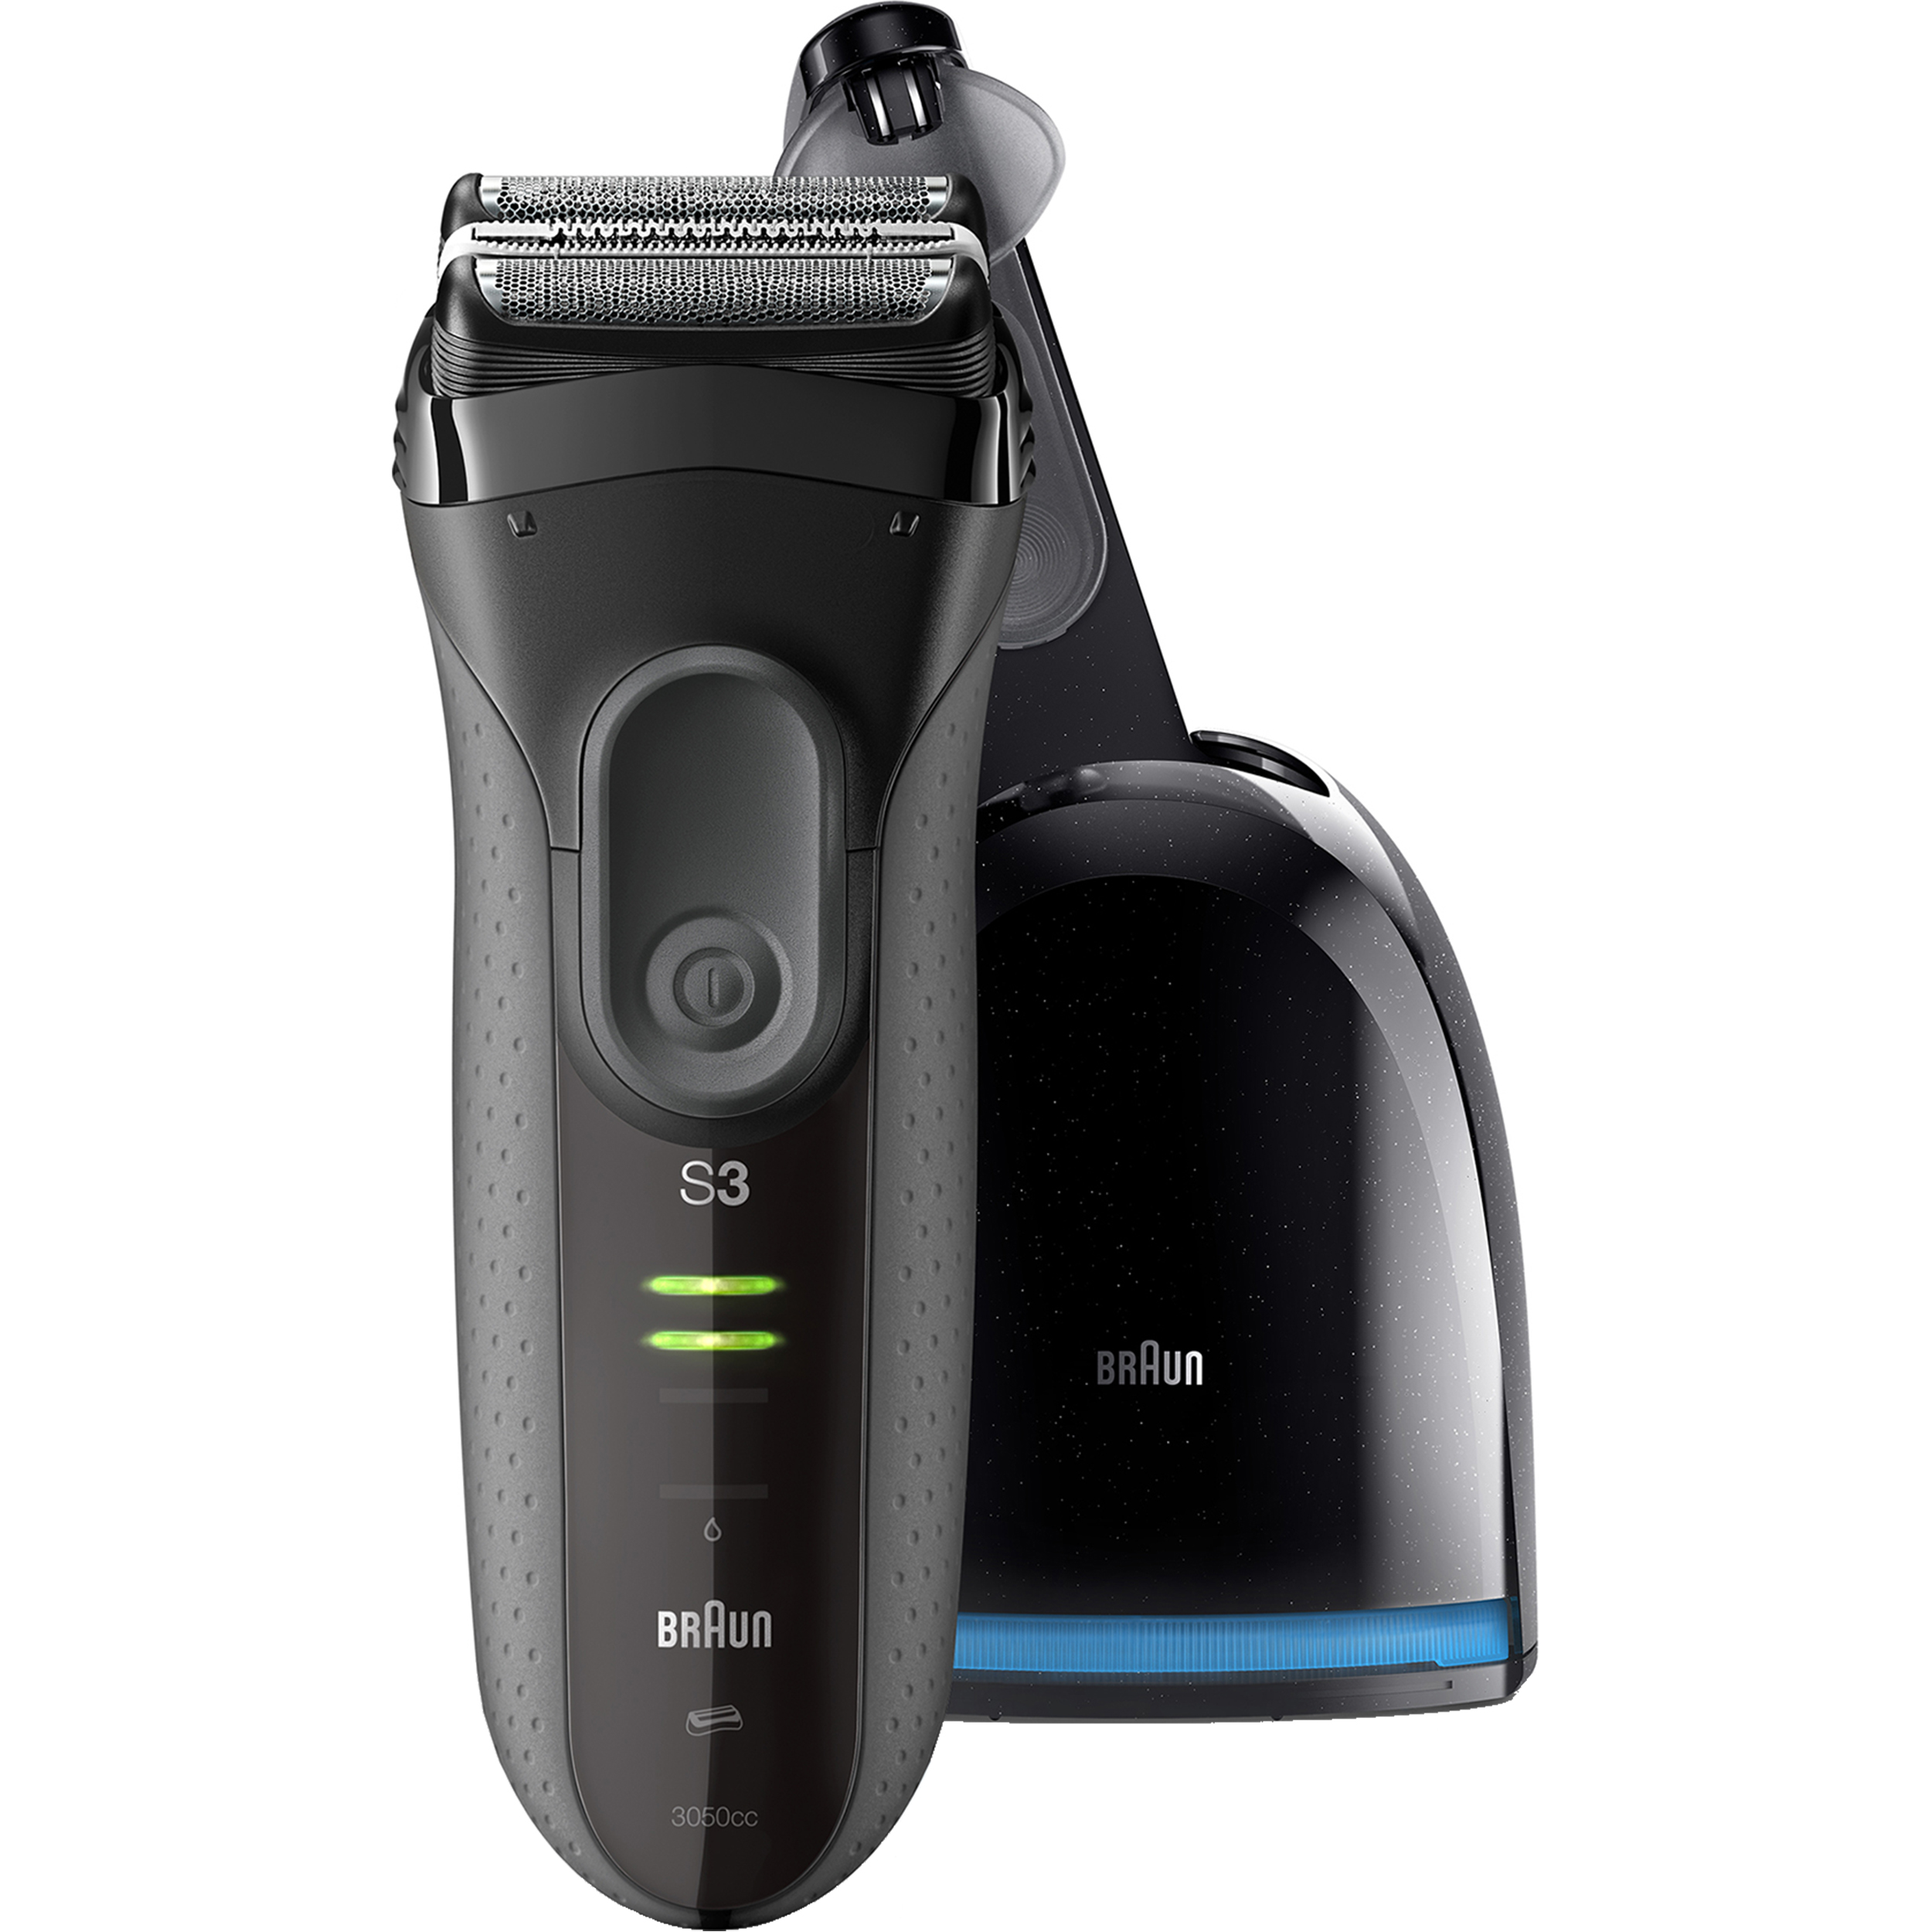 Series 3 ProSkin 3050cc ($15 Mail In Rebate Available) Electric Shaver for Men / Rechargeable Electric Razor, Black